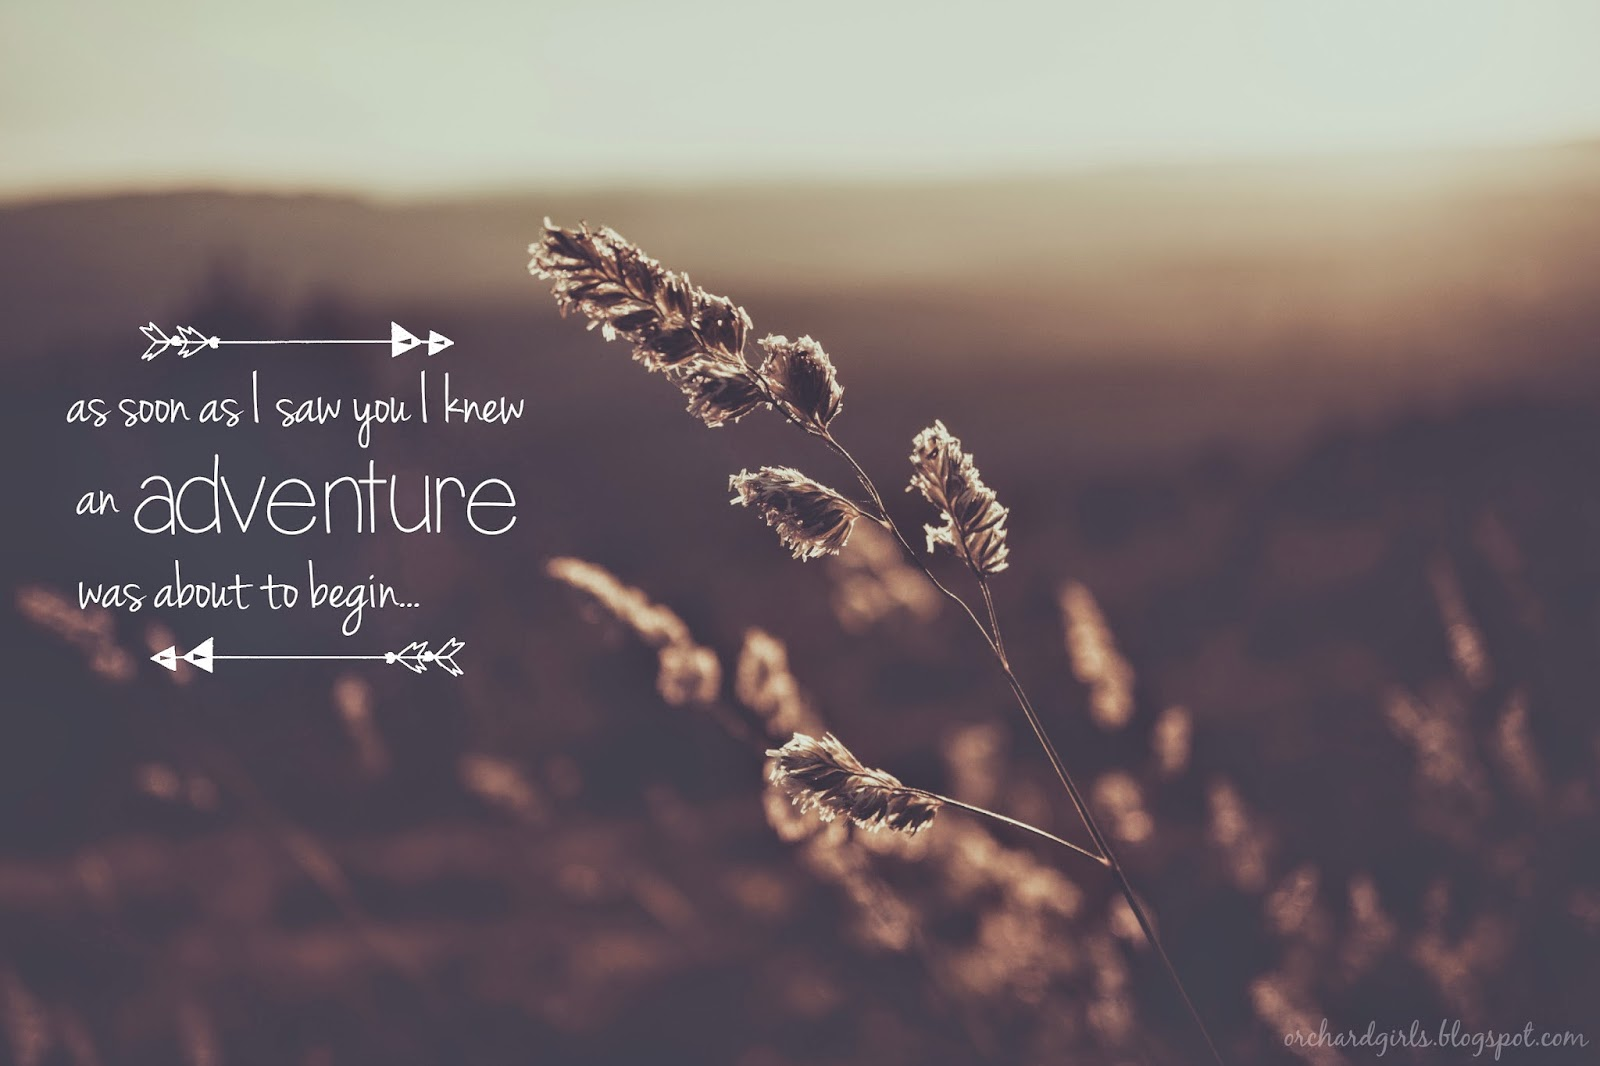 As soon as I saw you I knew an adventure was about to begin